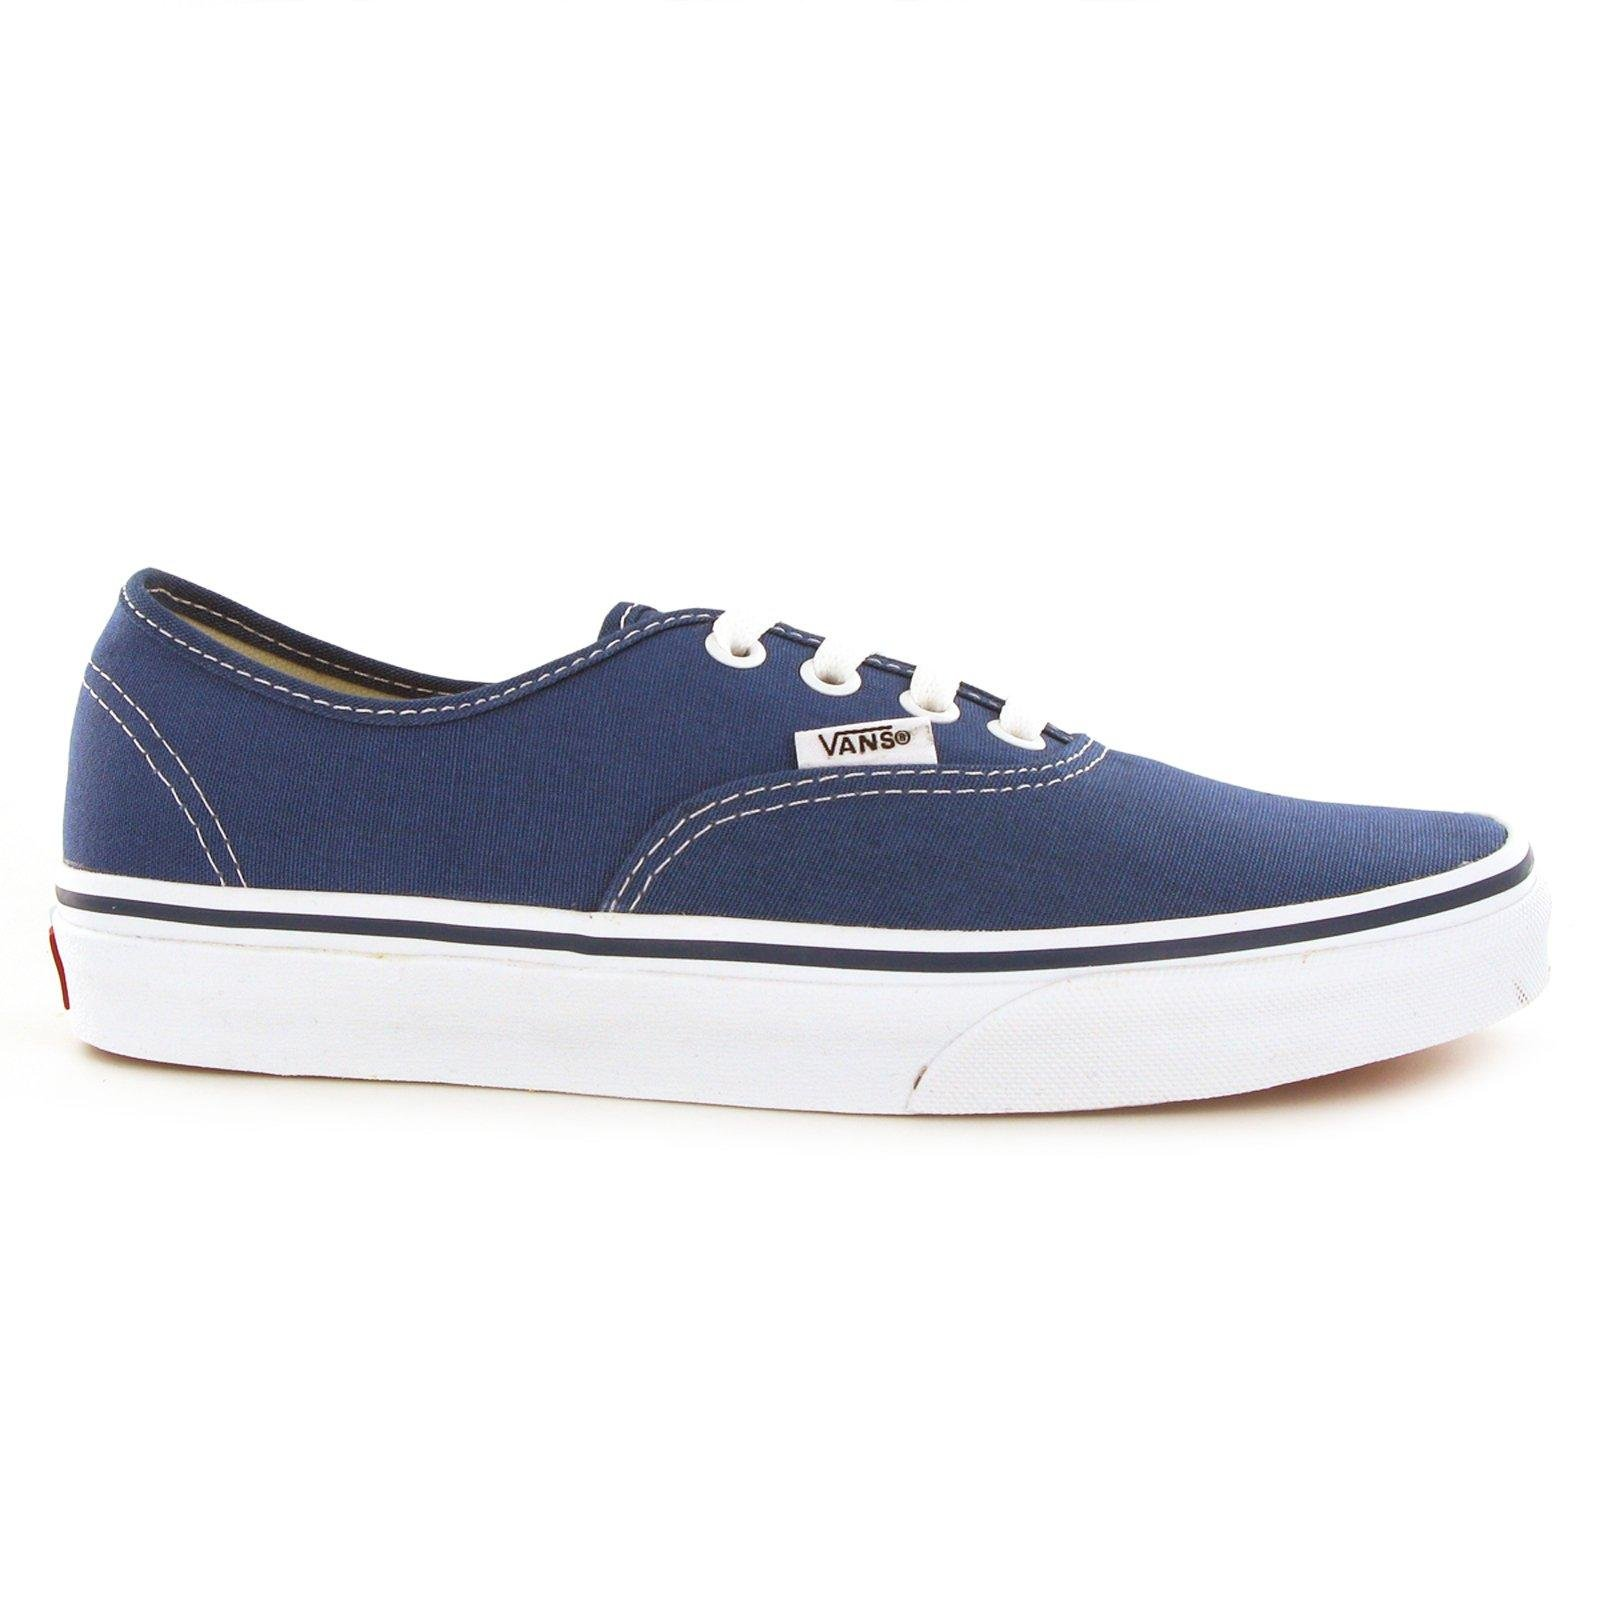 Vans Unisex Authentic Navy Canvas VN000EE3NVY Mens 7, Womens 8.5 by Vans